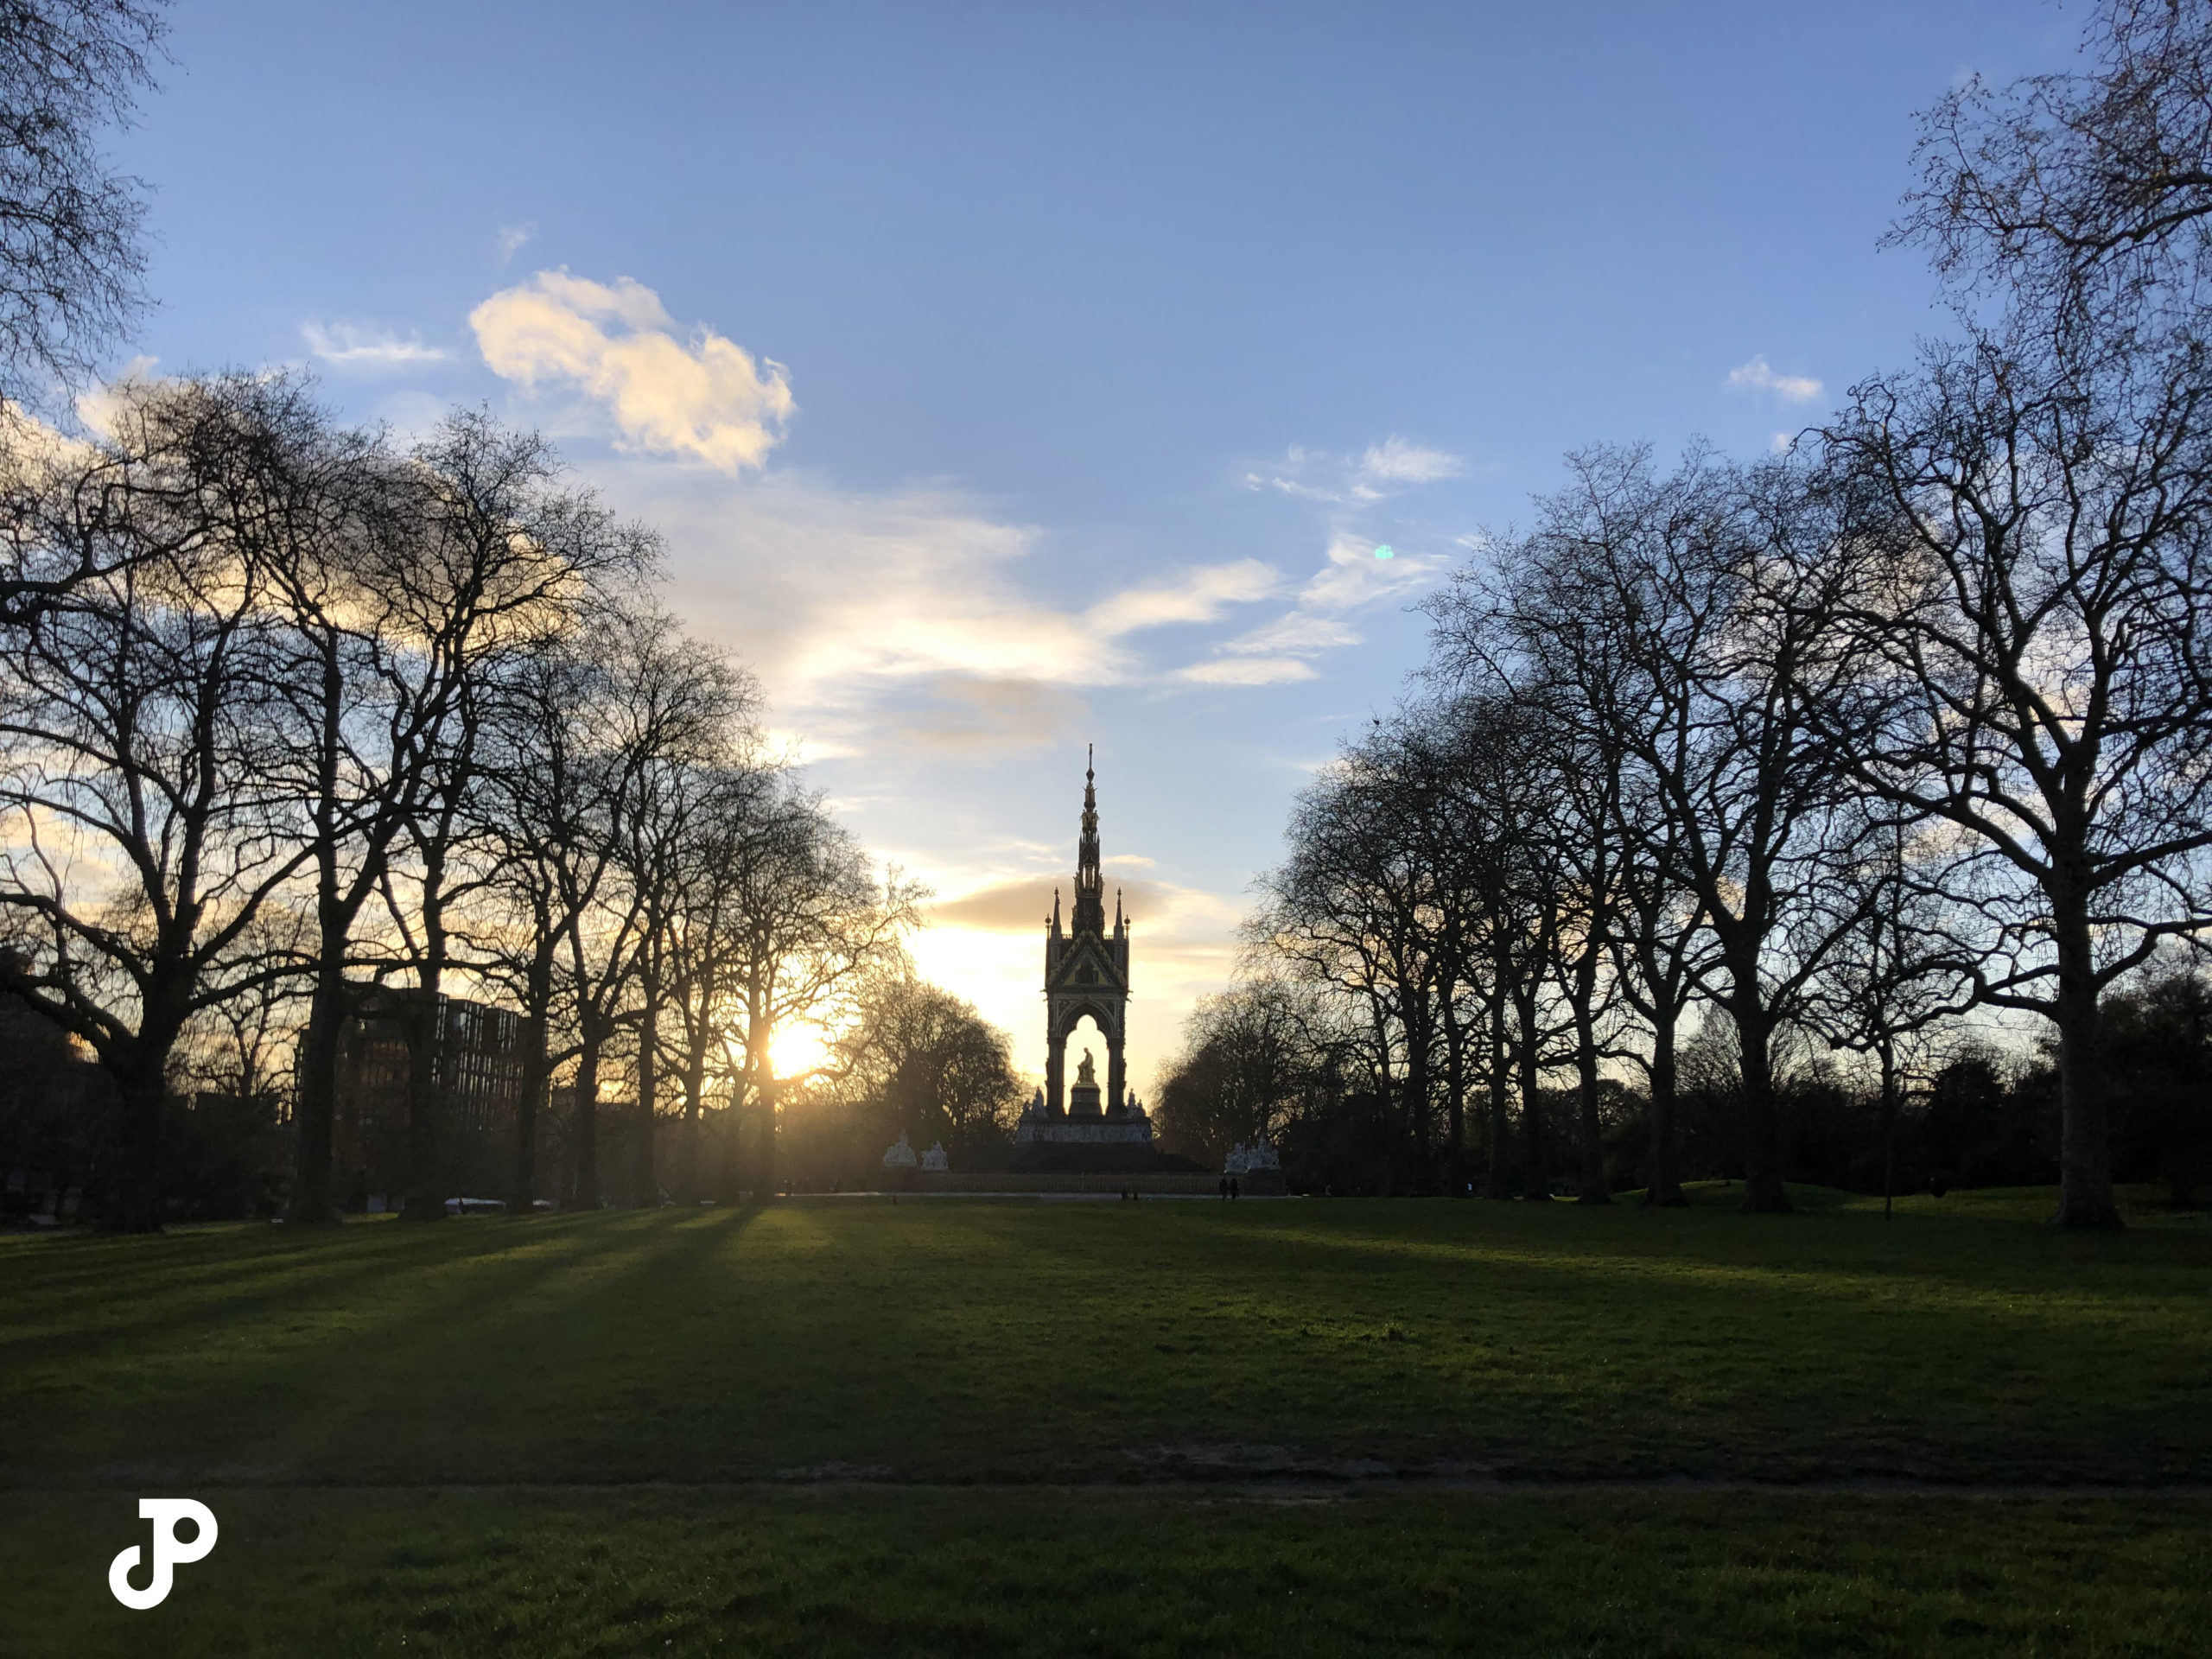 a grassy park with the Albert Memorial in the distance